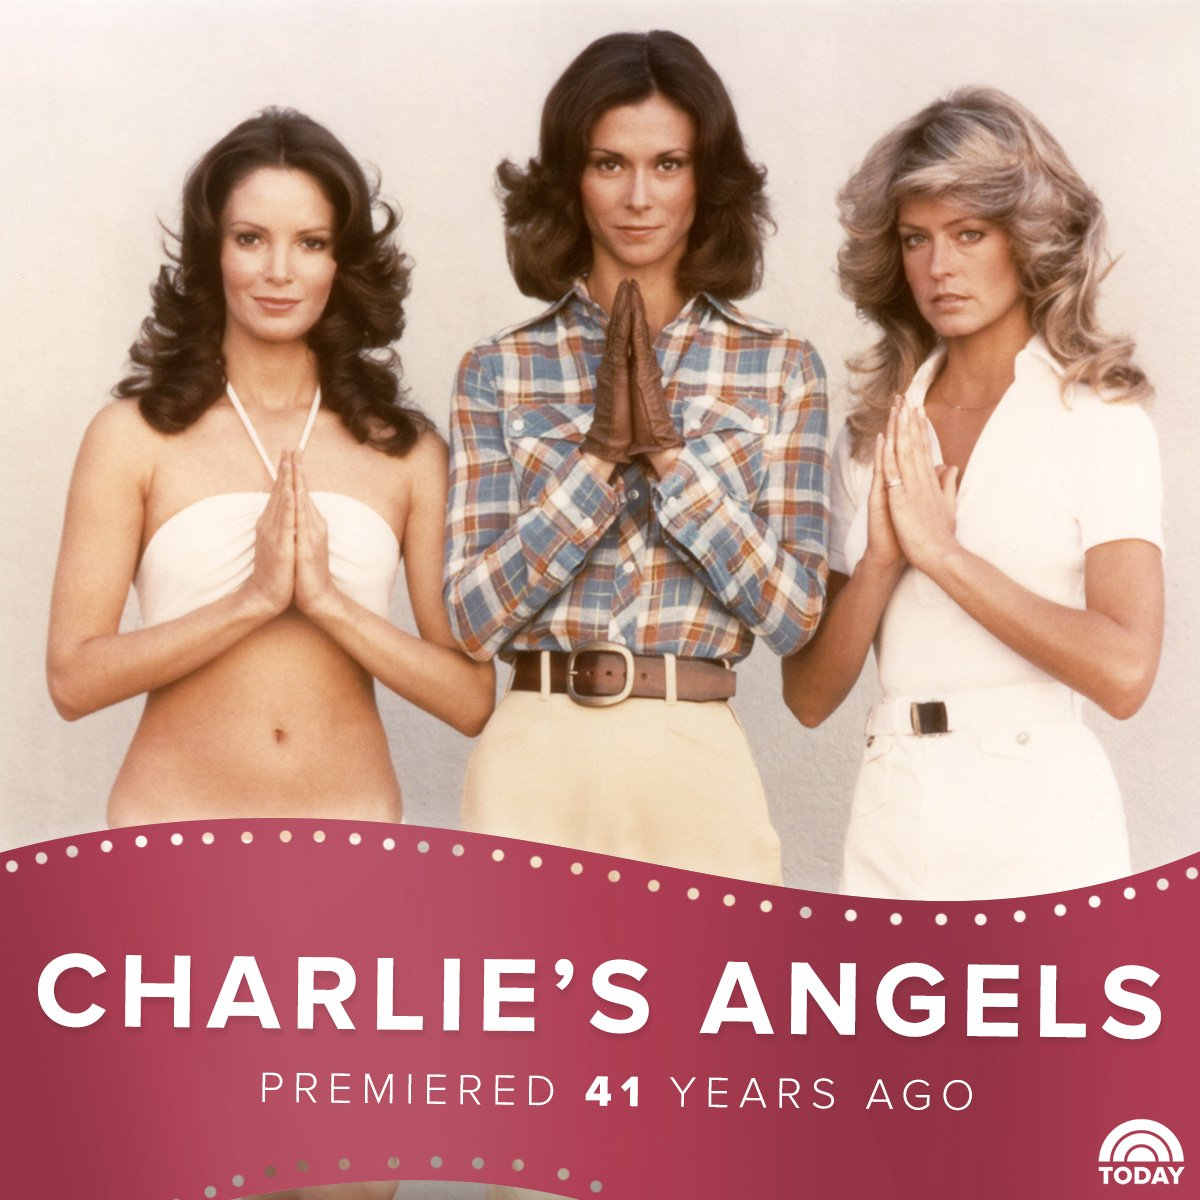 Once upon a time 41 years ago… the world was introduced to Charlie's Angels.